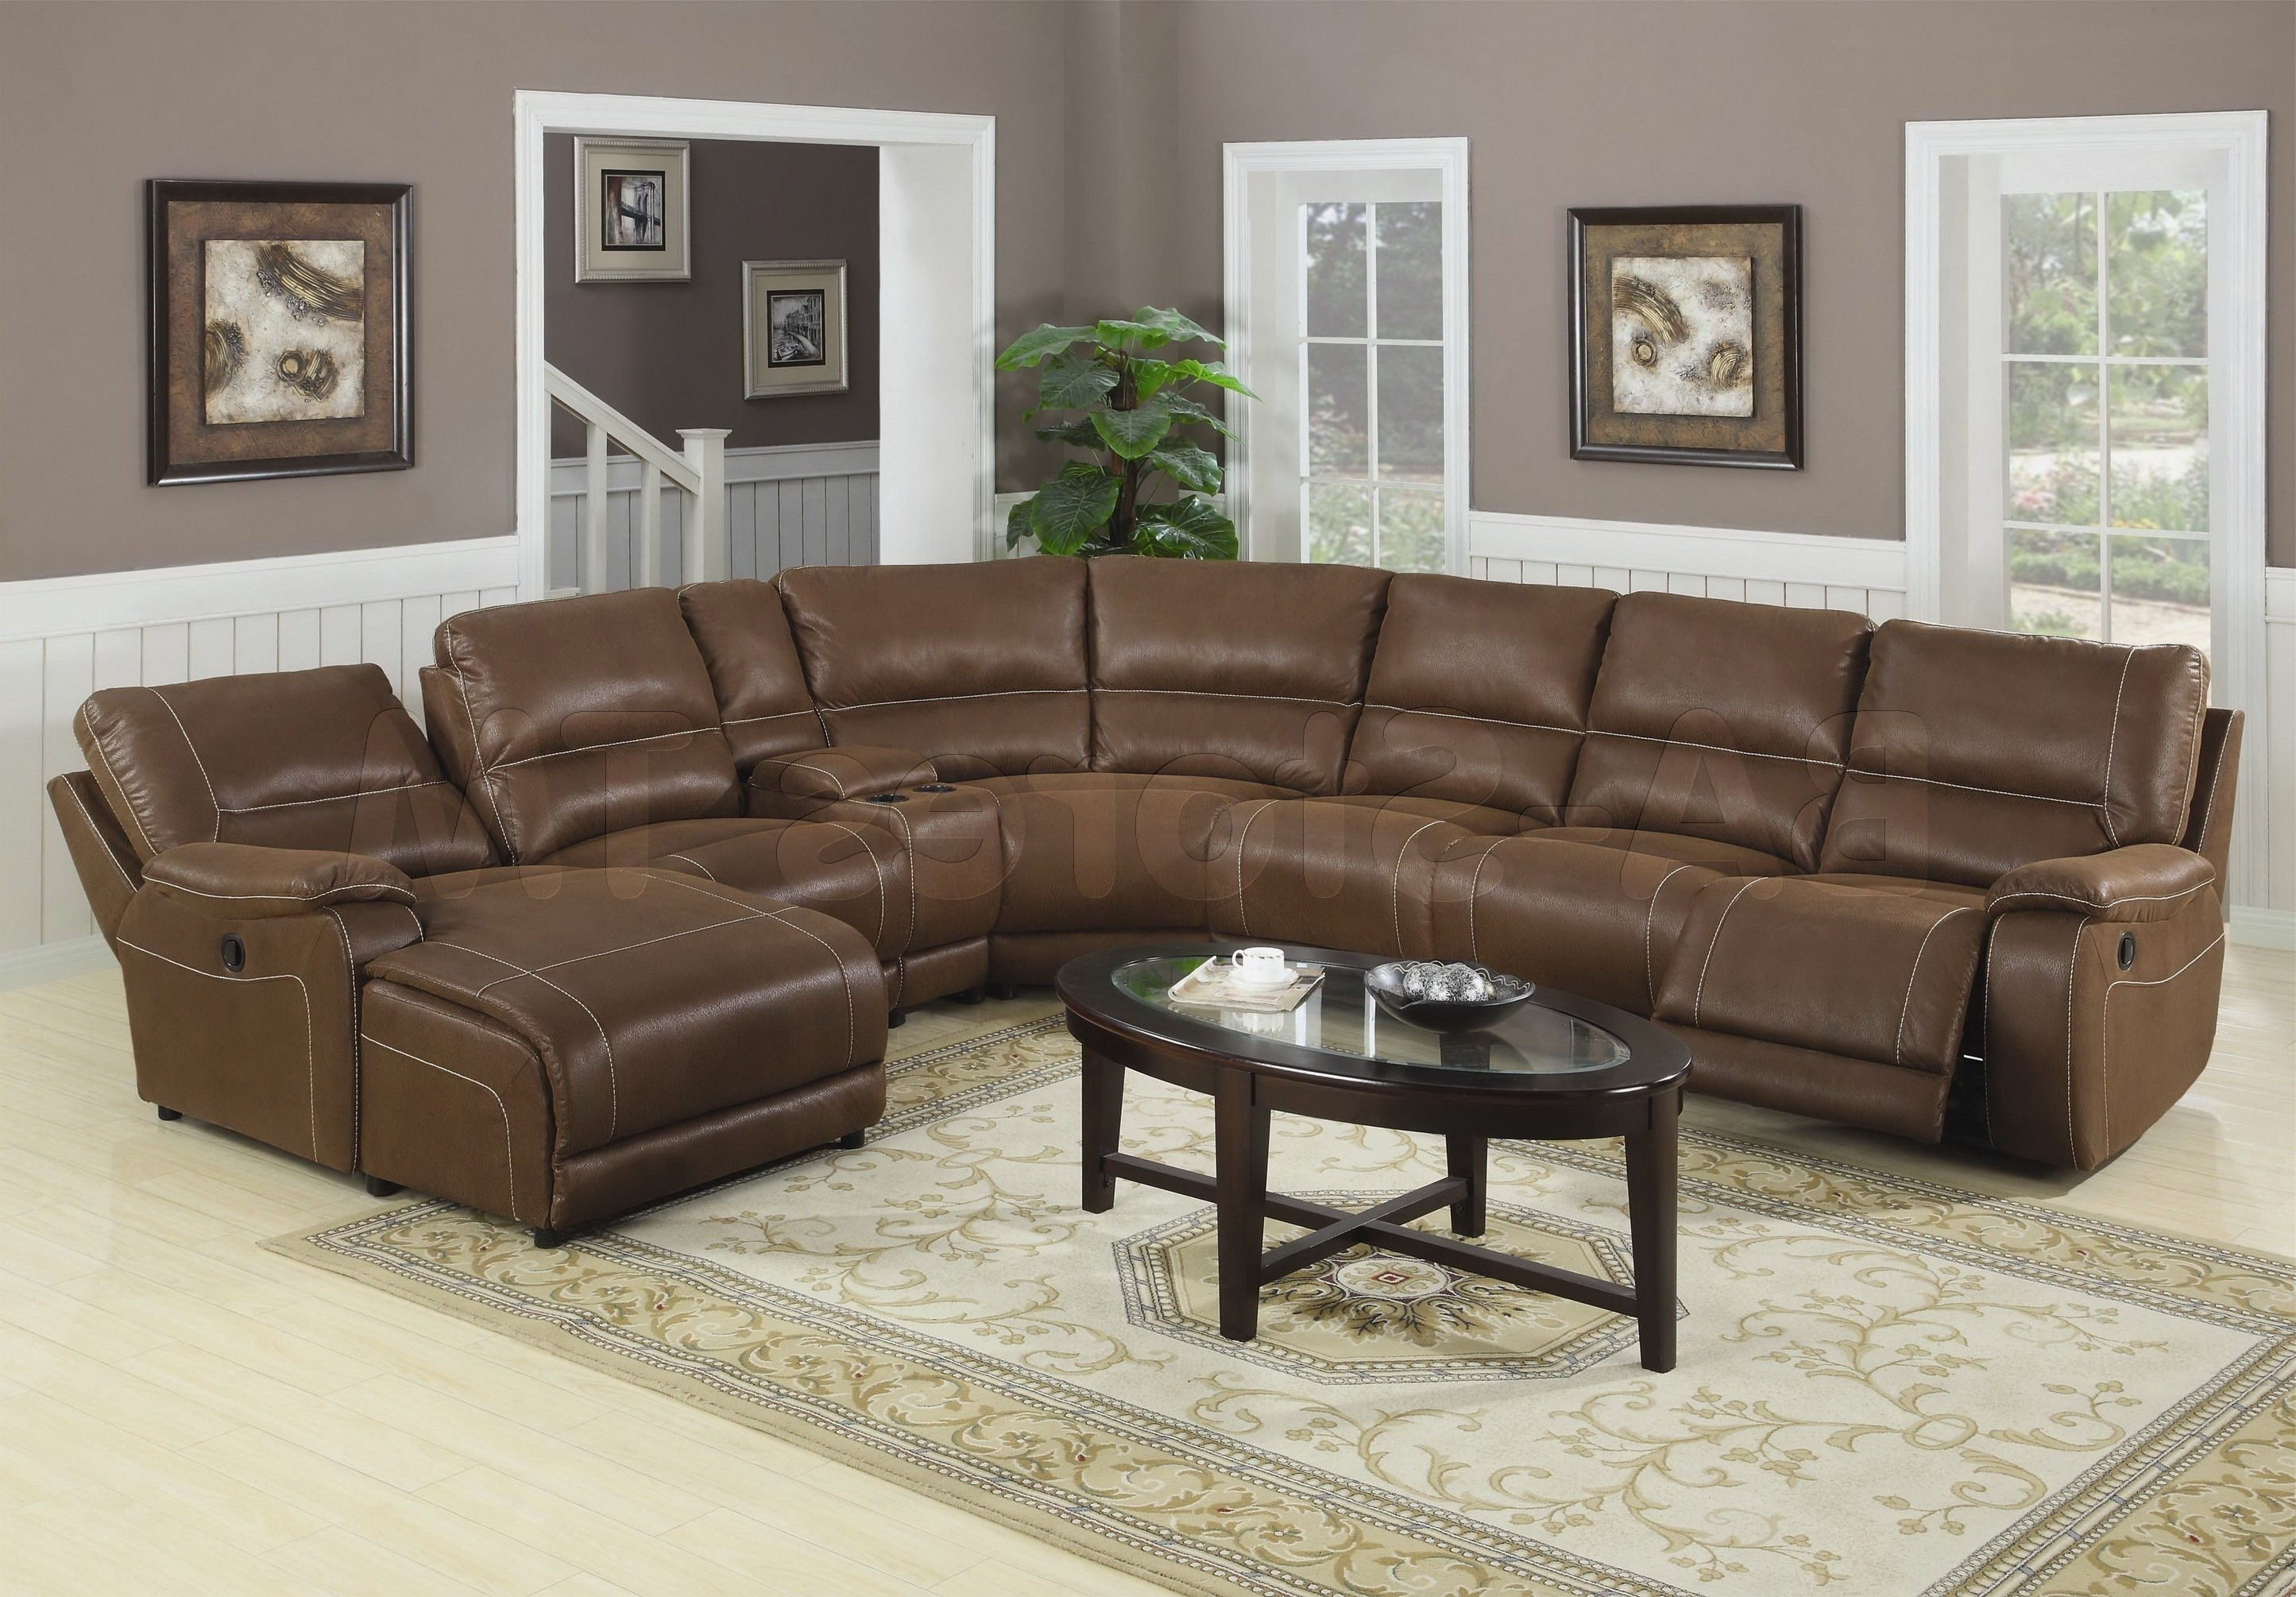 Well Known Interior Luxury Oversized Sectional Sofa For Awesome Living Room Intended For Luxury Sectional Sofas (View 8 of 20)